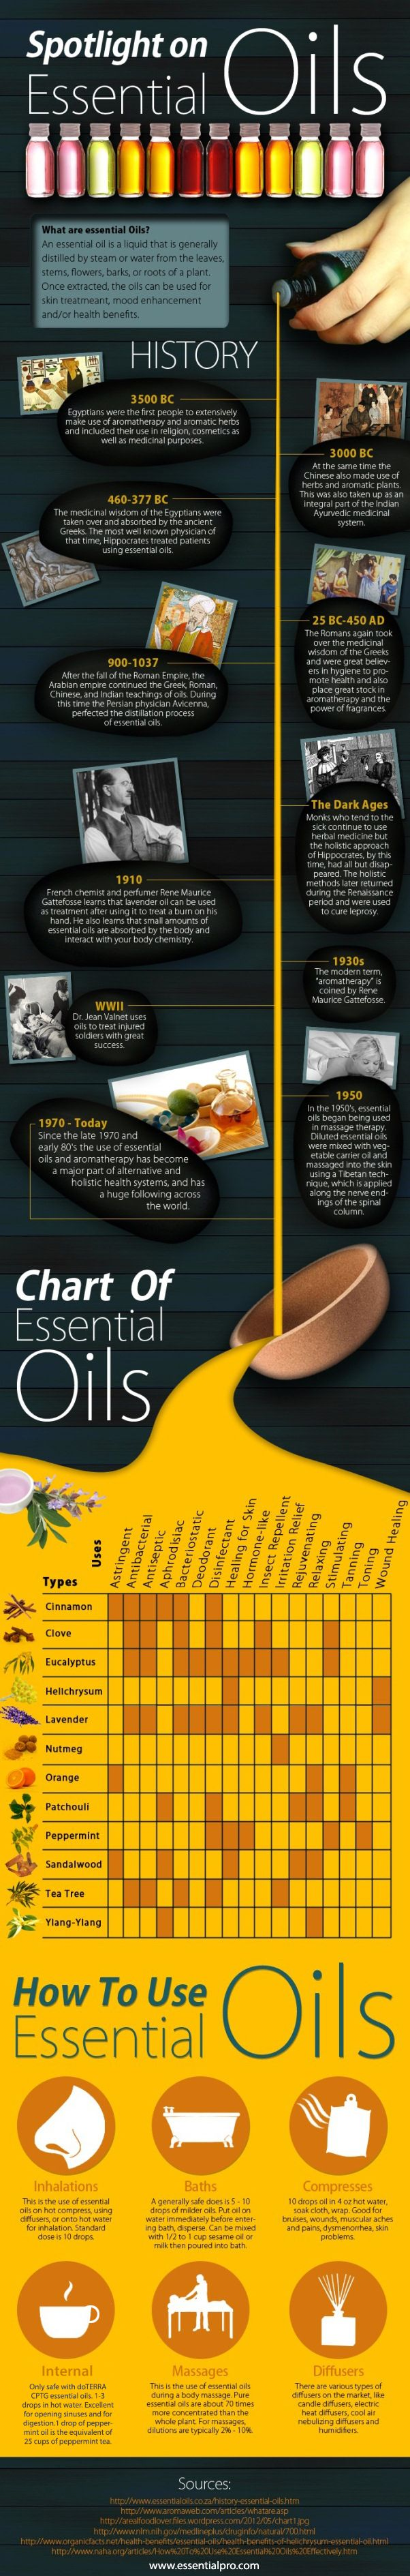 History and uses of essential oils